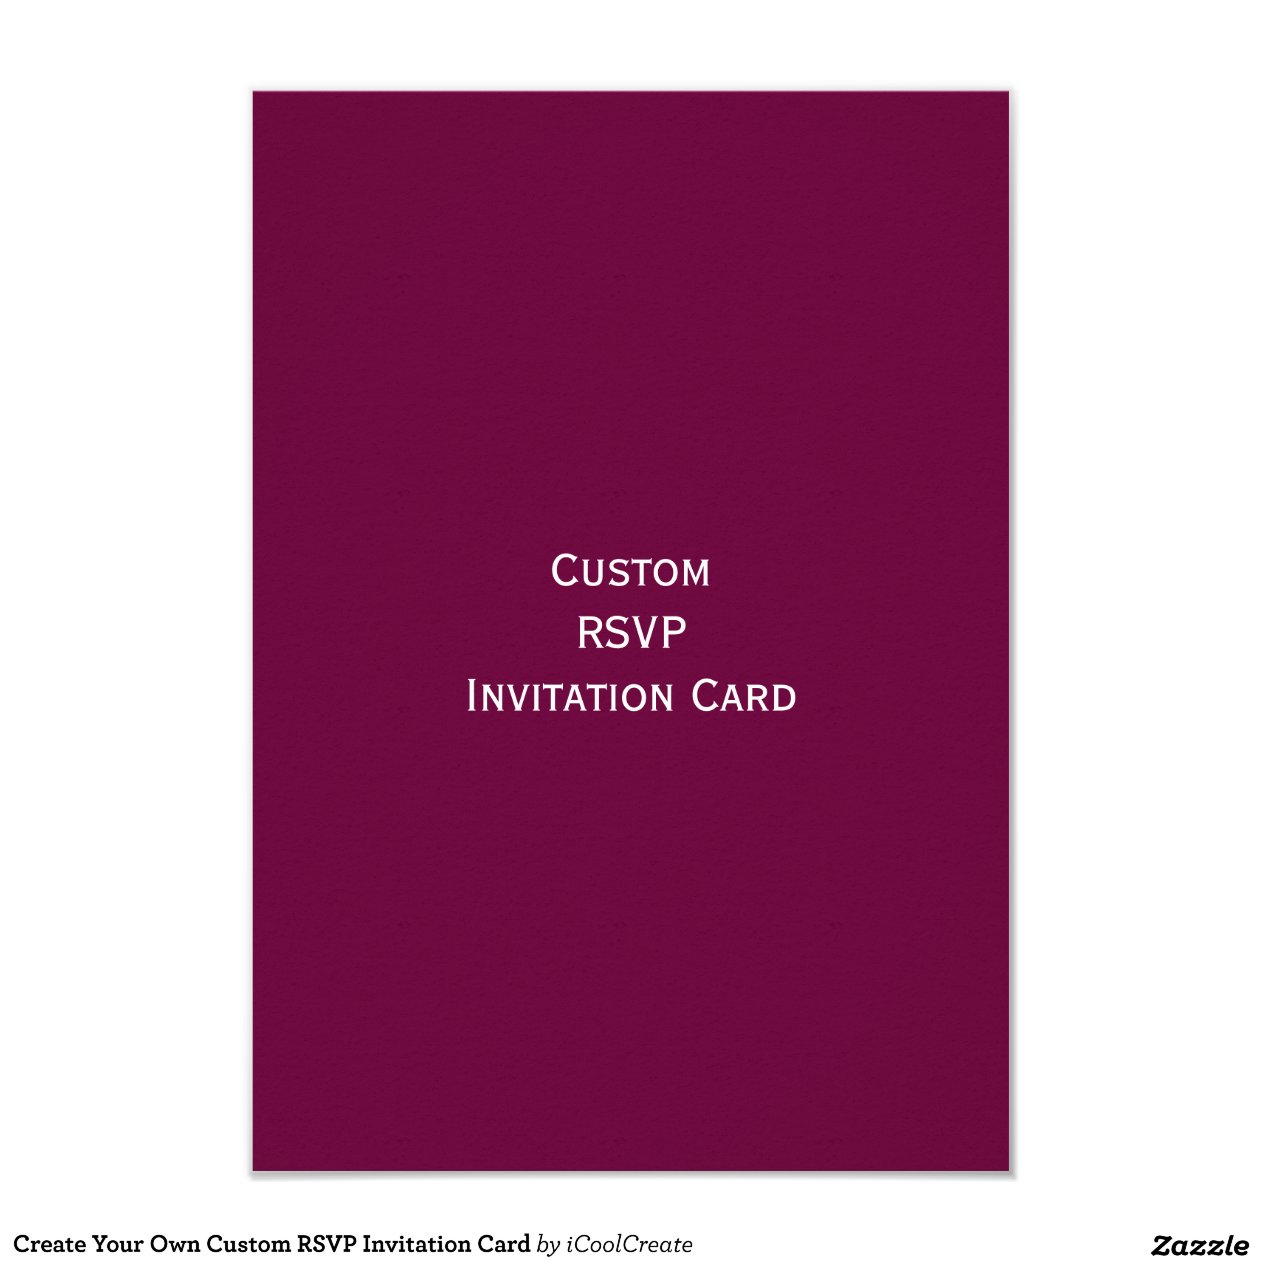 Create Your Own Invitation Cards